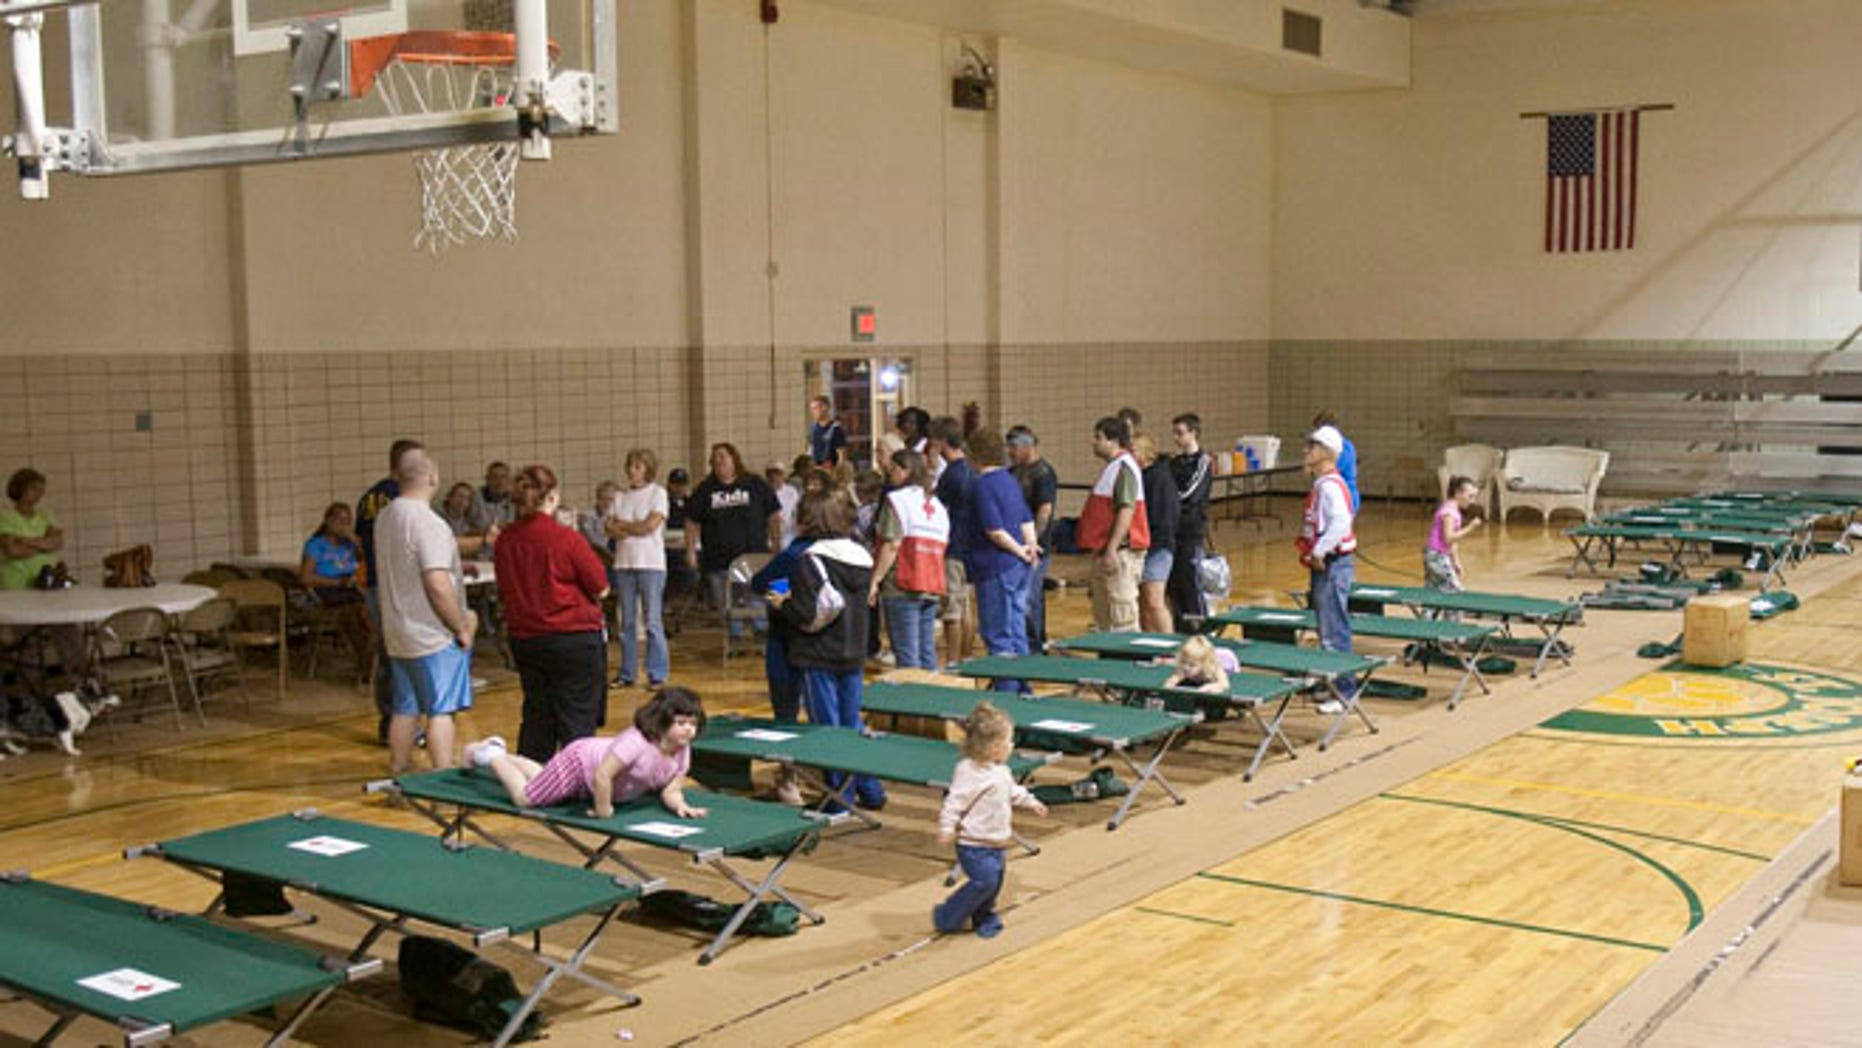 Sept. 14, 2012: Mishawaka, Indiana residents receive instructions at a Red Cross emergency shelter at the St. Joseph's School in Mishawaka.